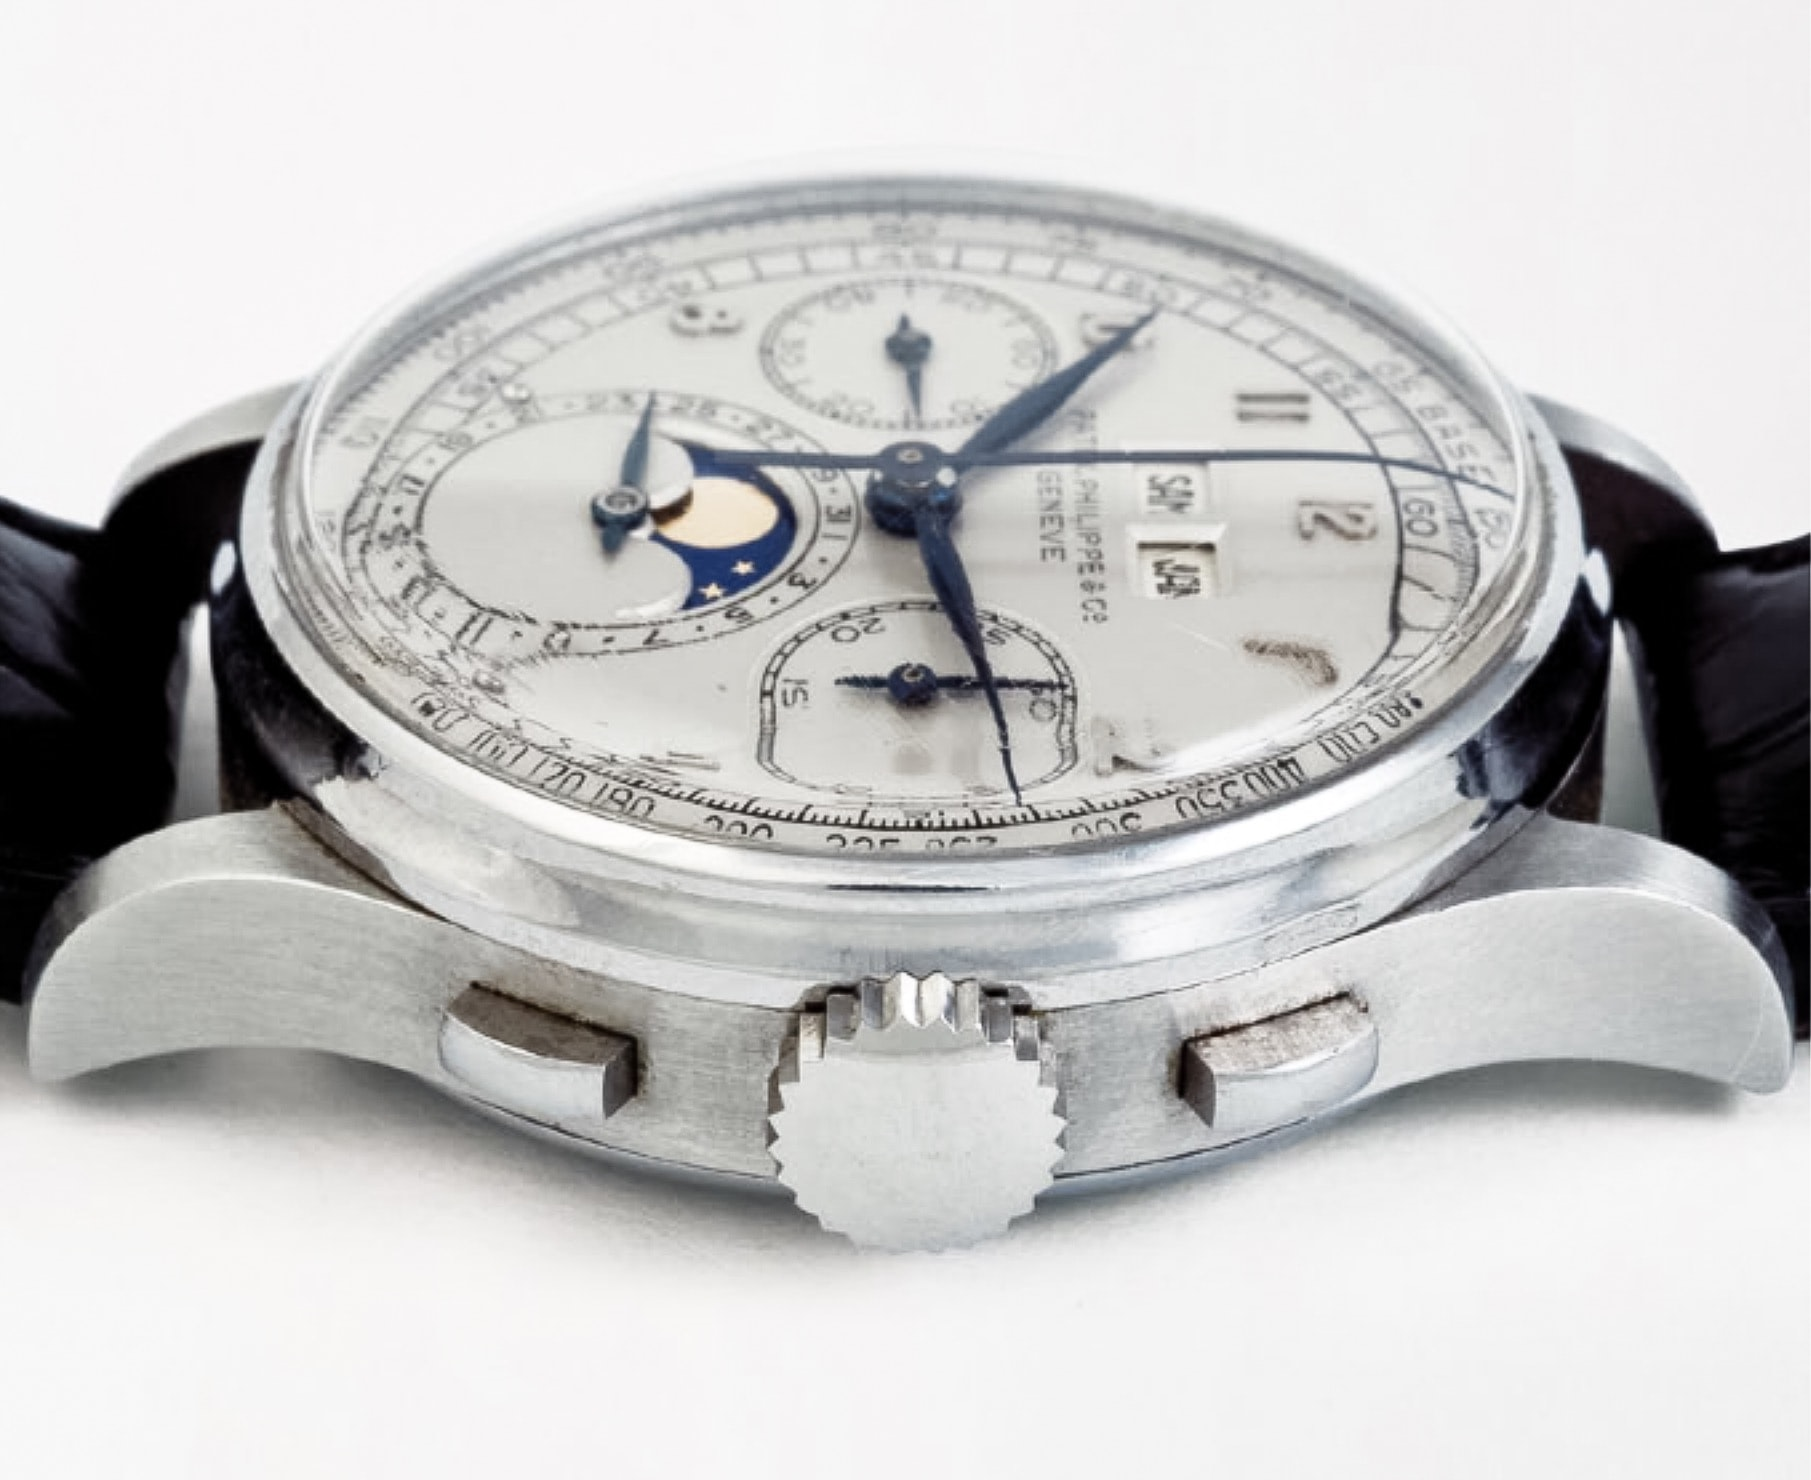 In-Depth: The Patek Philippe 1518 In Steel (Video, Live Photos, History, & Thoughts) In-Depth: The Patek Philippe 1518 In Steel (Video, Live Photos, History, & Thoughts) IMG 7816